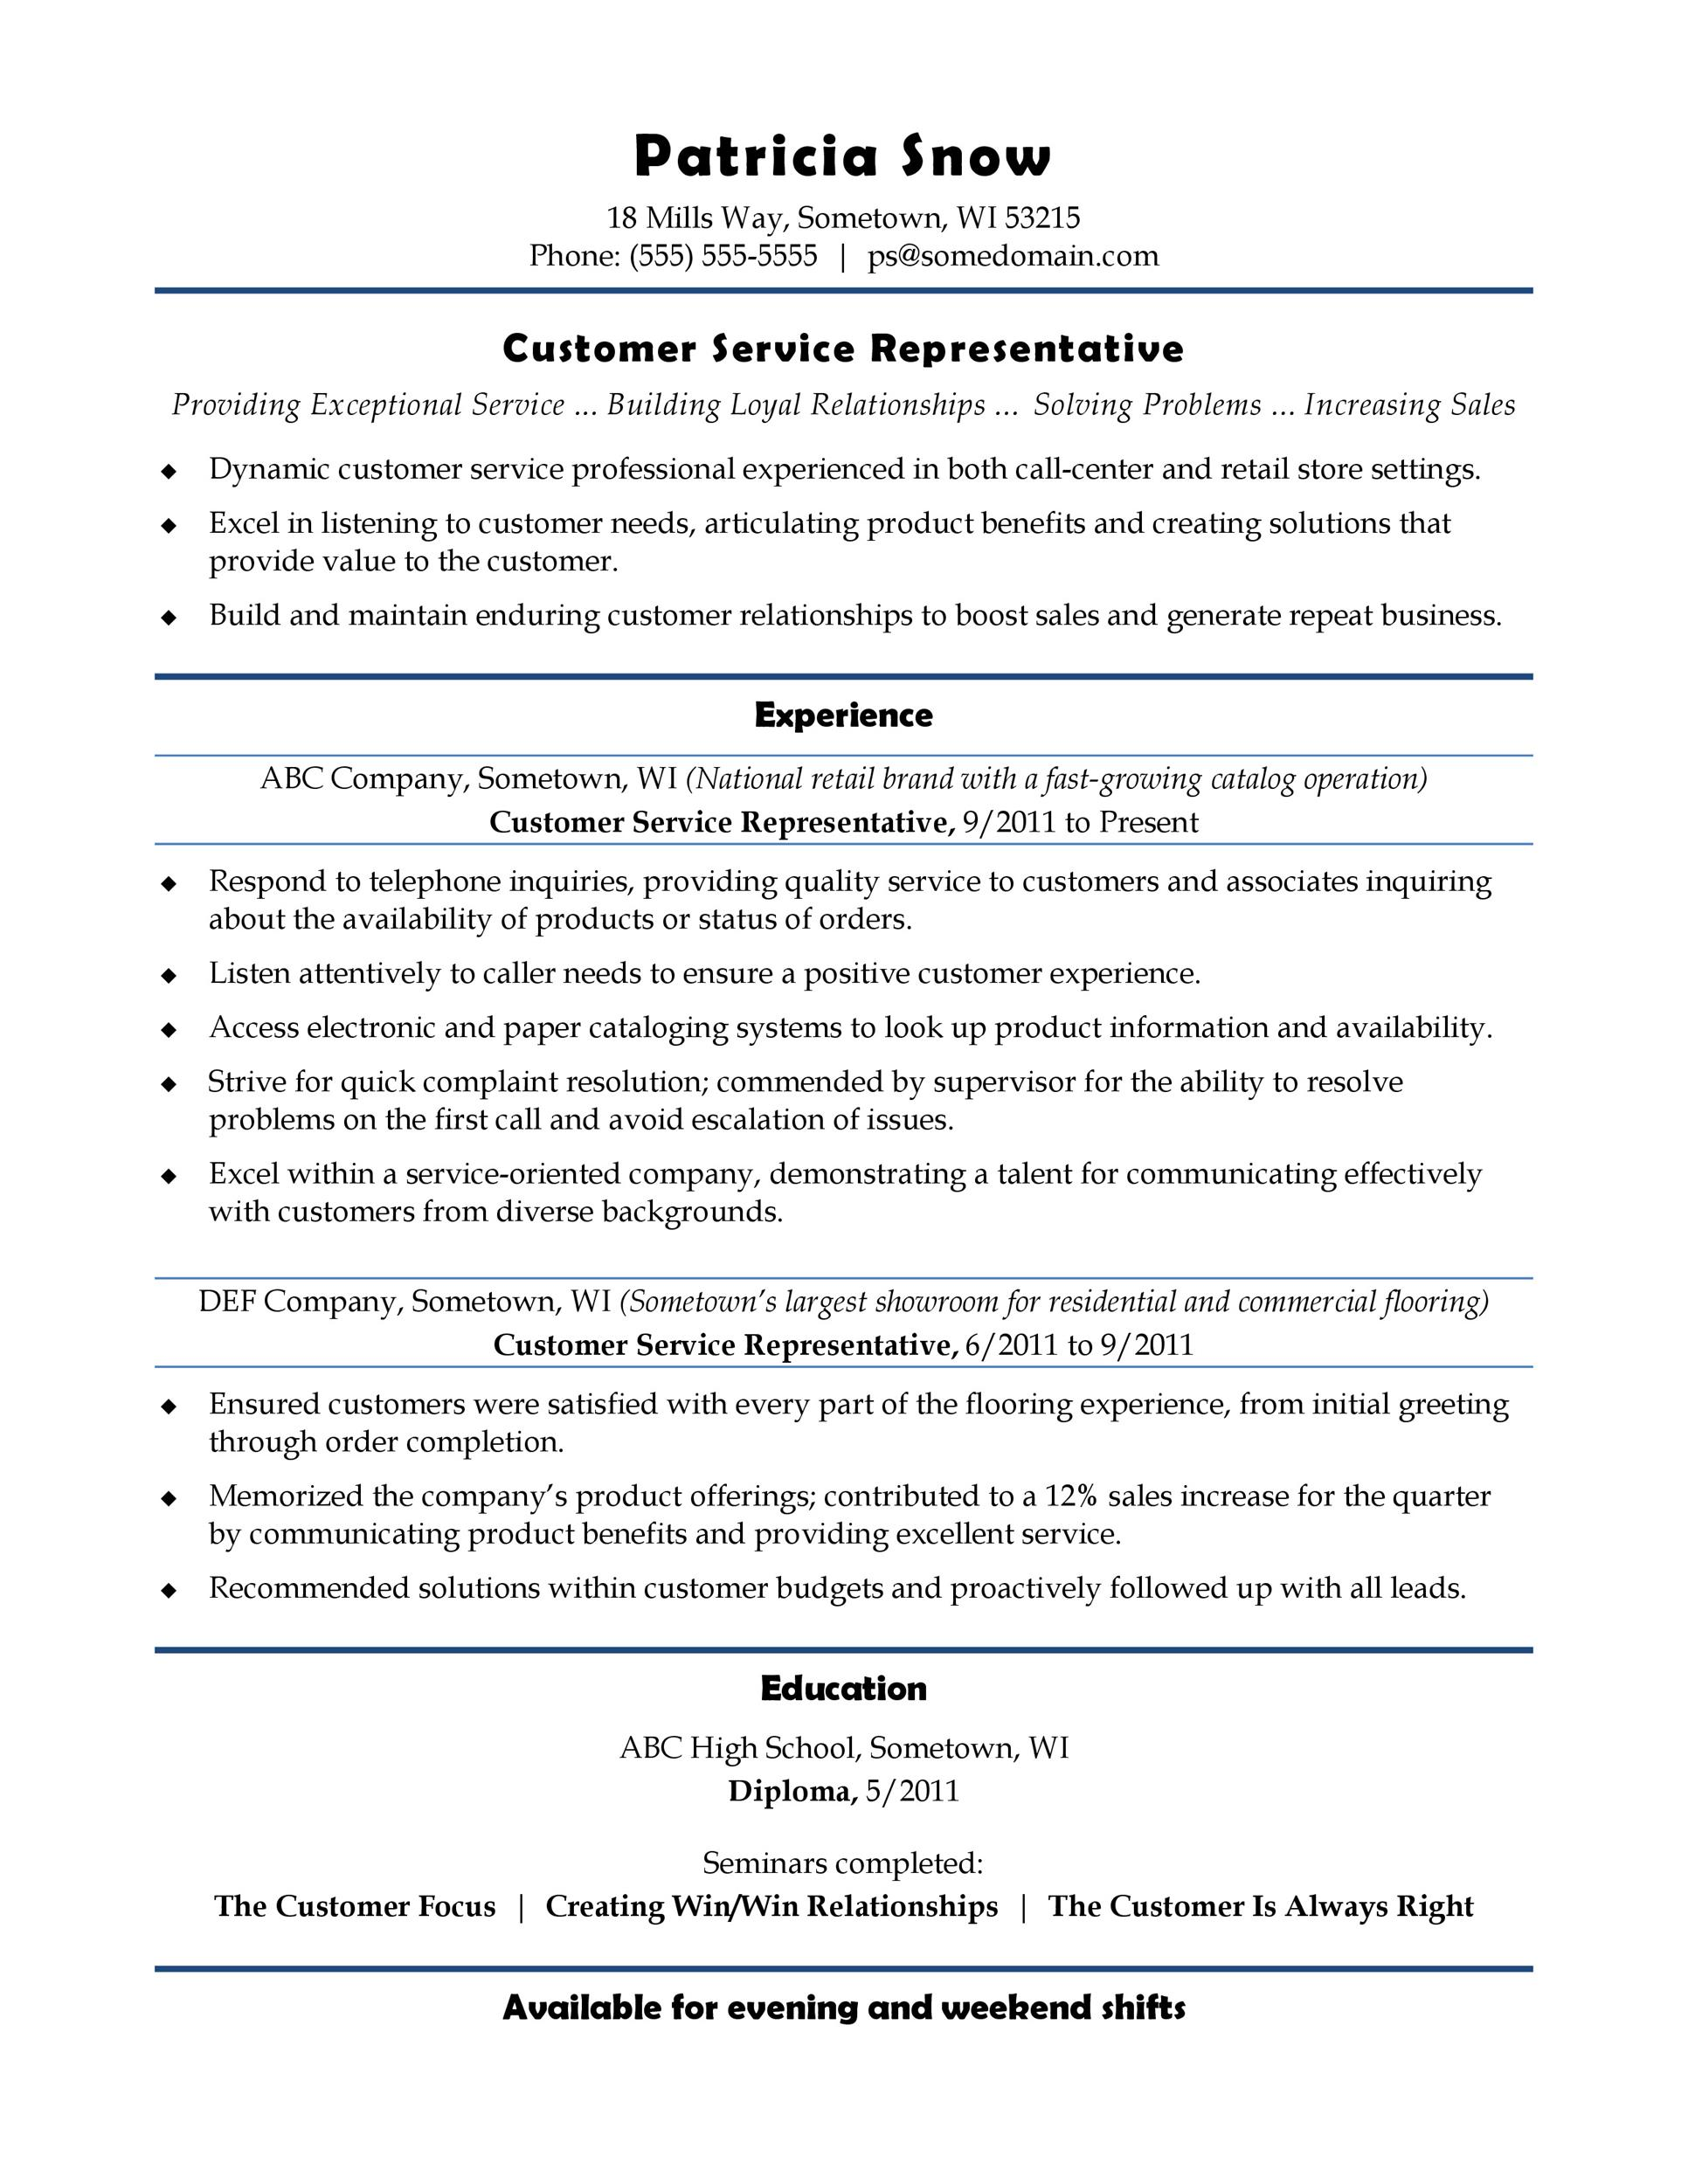 30+ Customer Service Resume Examples - Template Lab